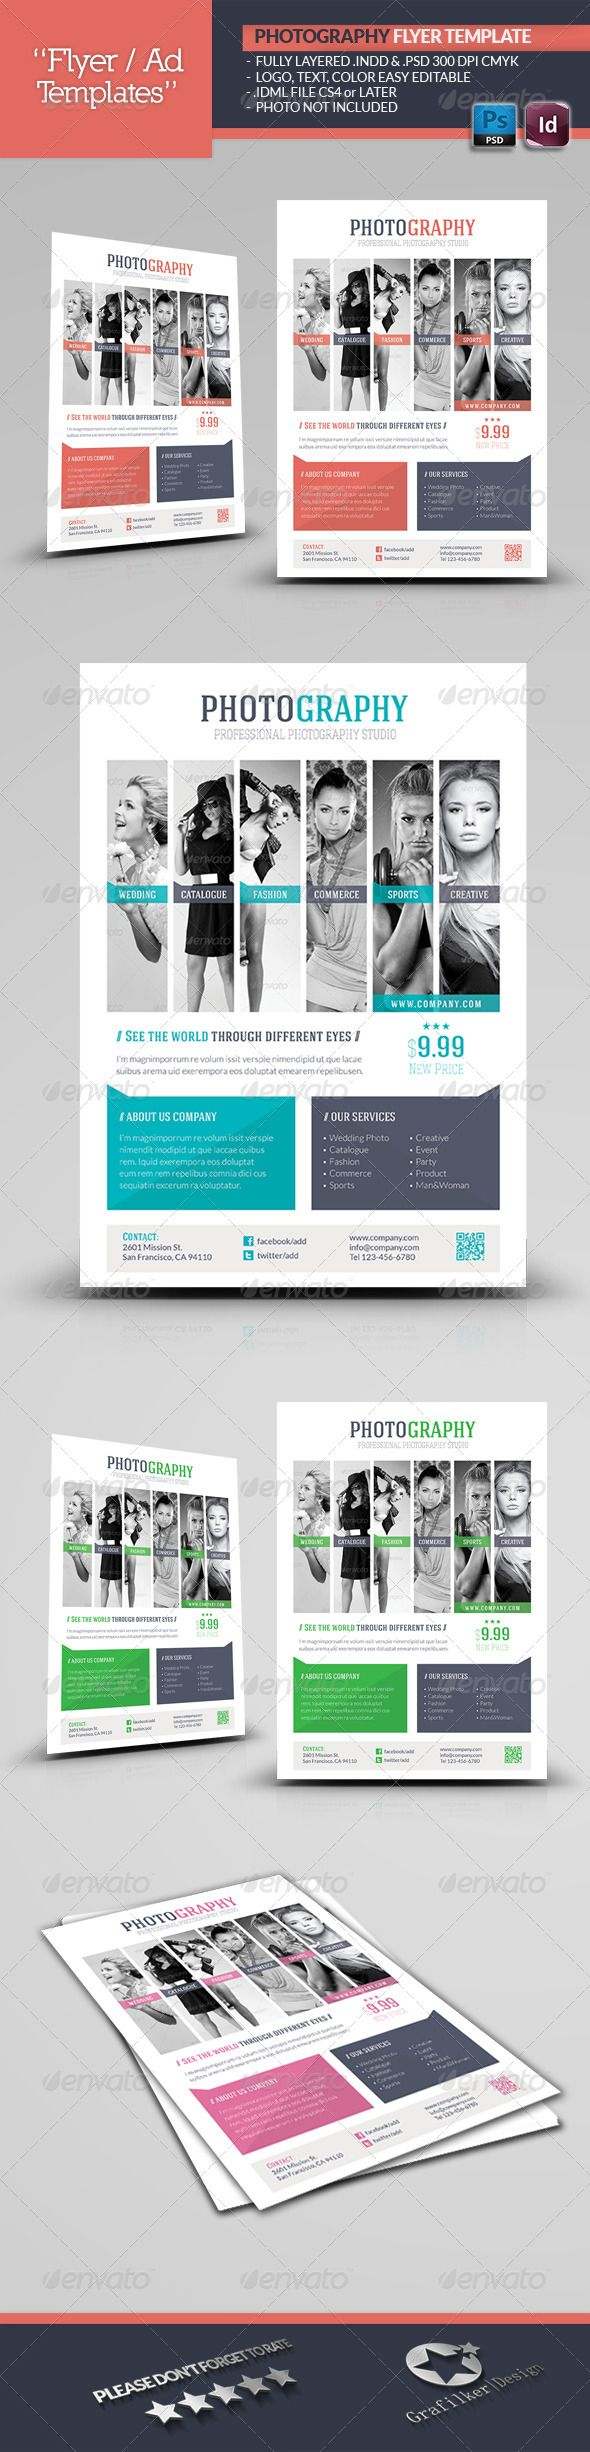 13 best print template images on Pinterest | Corporate flyer, Flyer ...